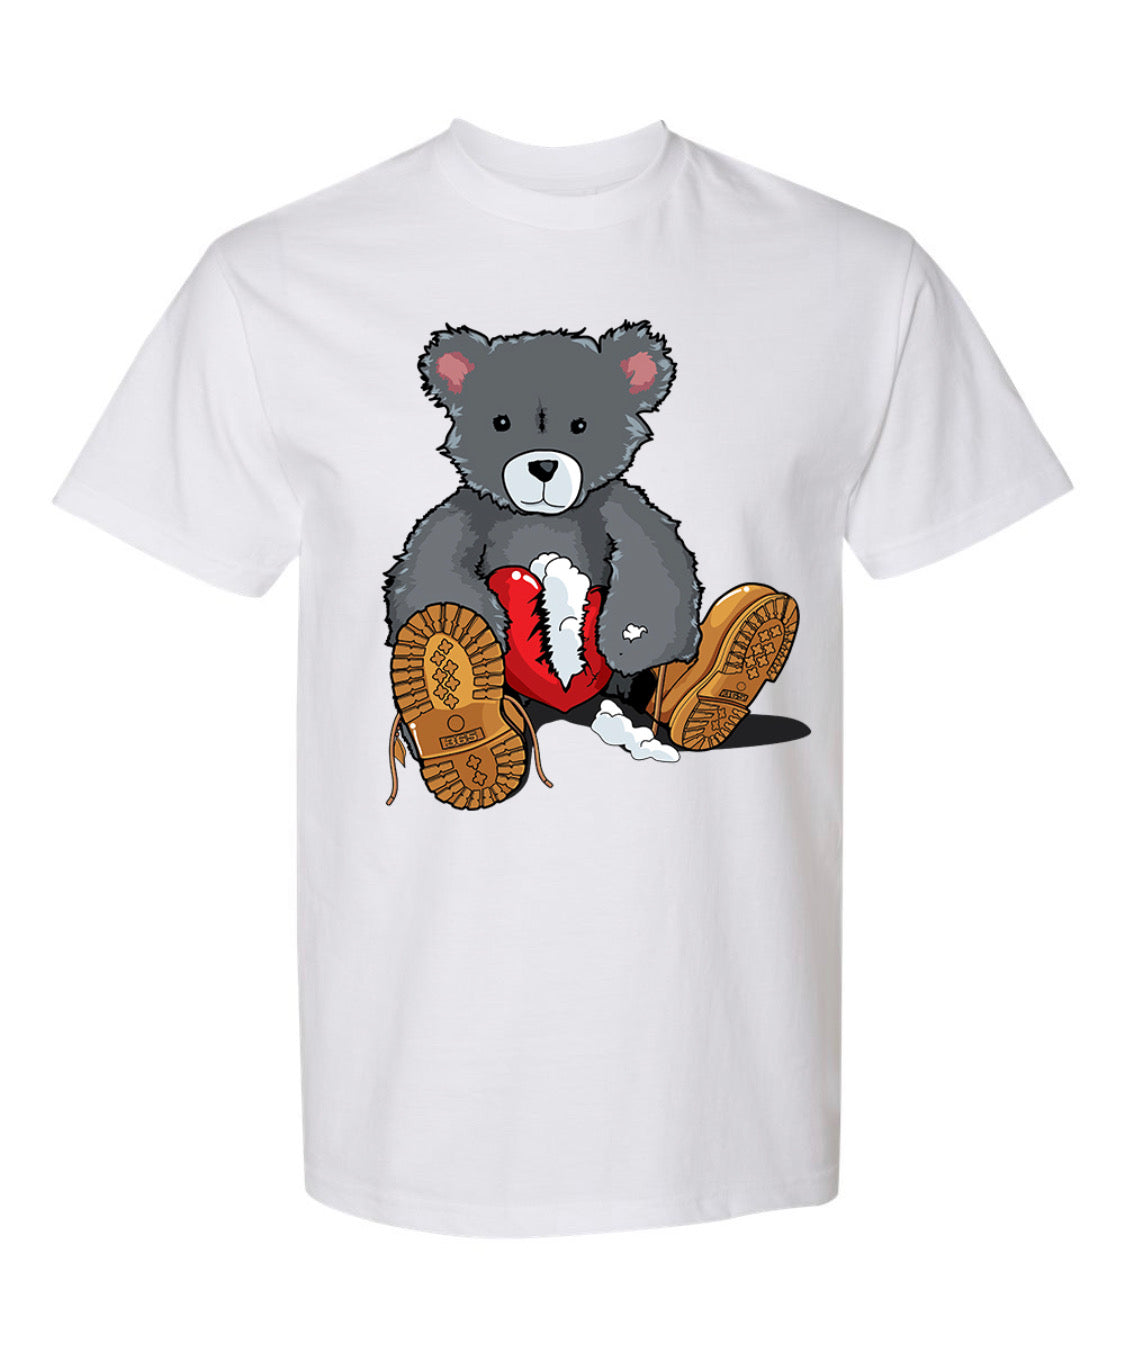 365 Clothing Broken Heart Bear T-Shirt -White